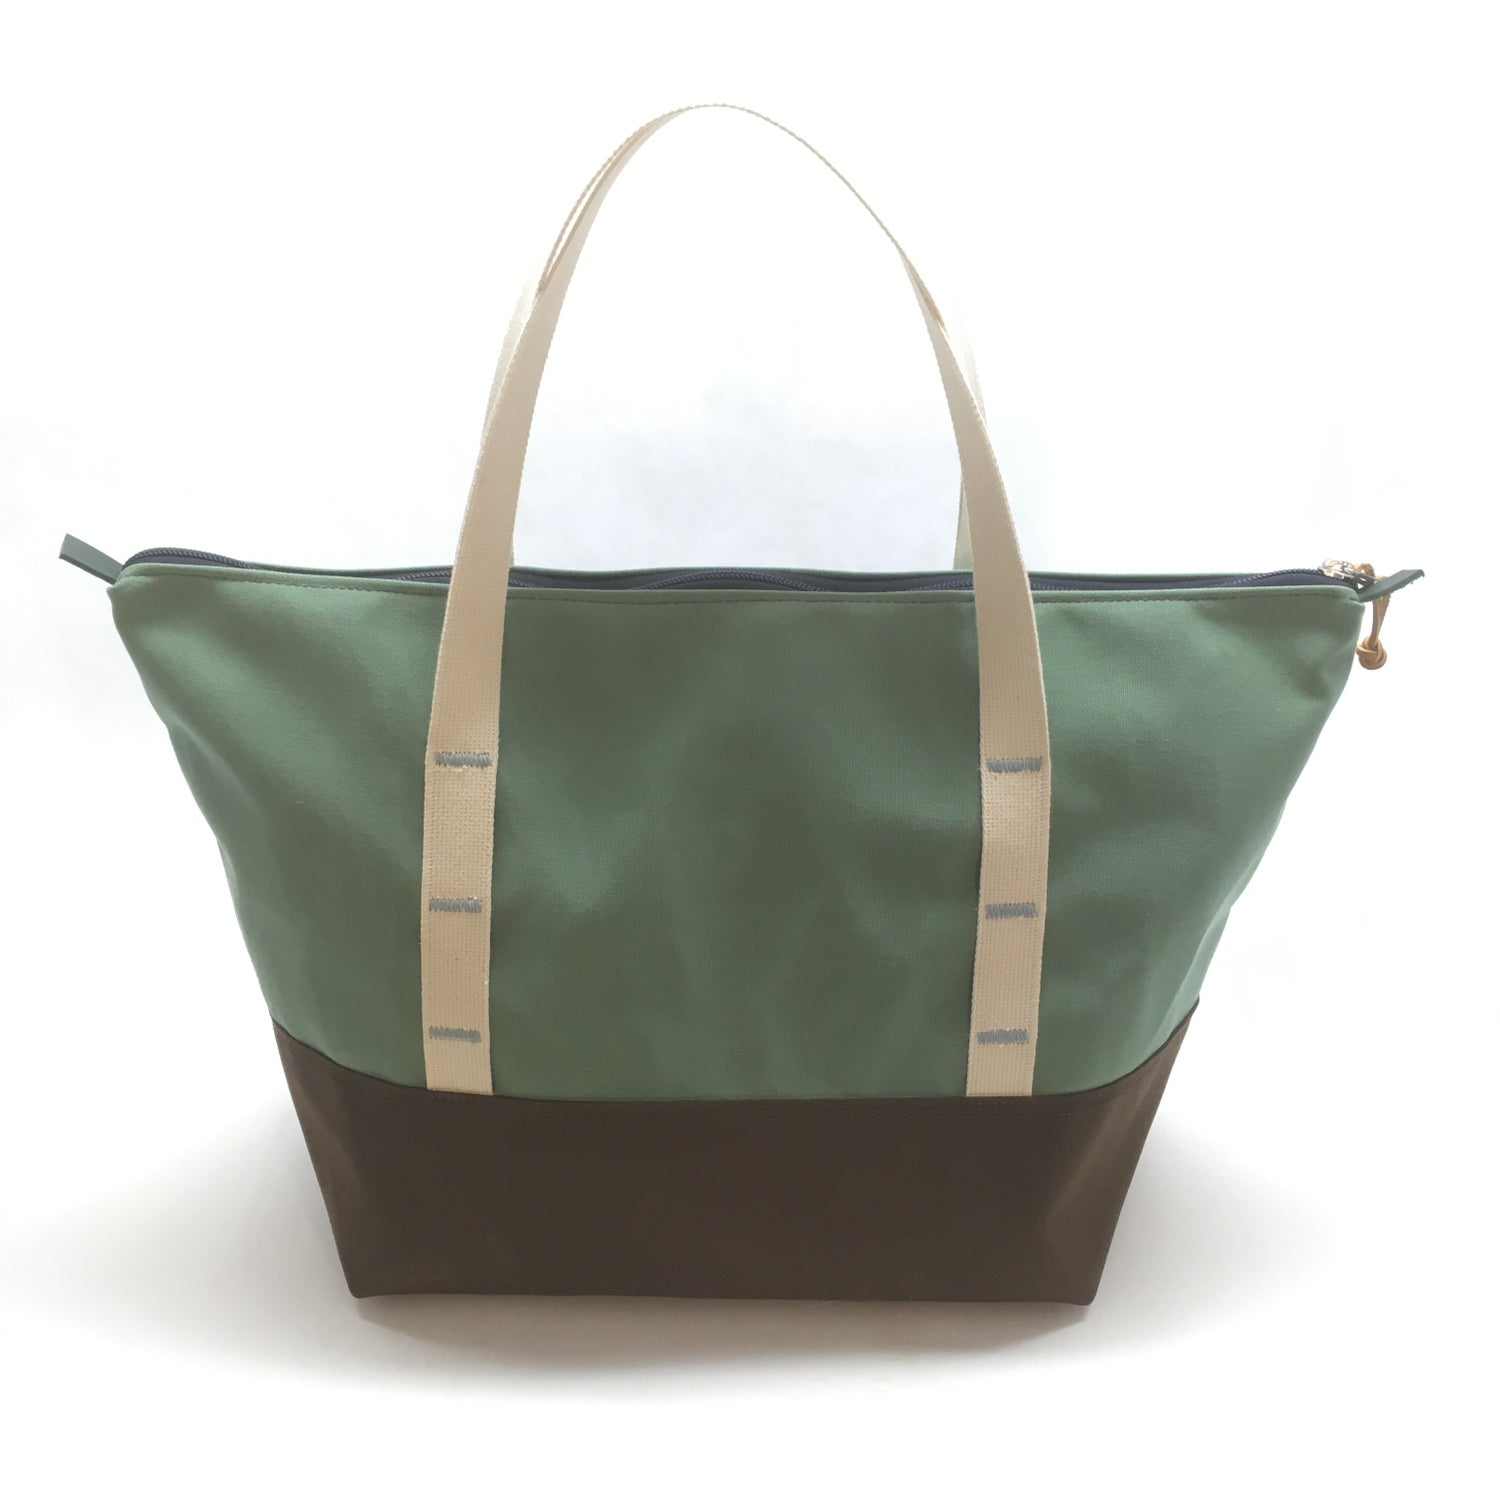 Image of ROUND UP TOTE